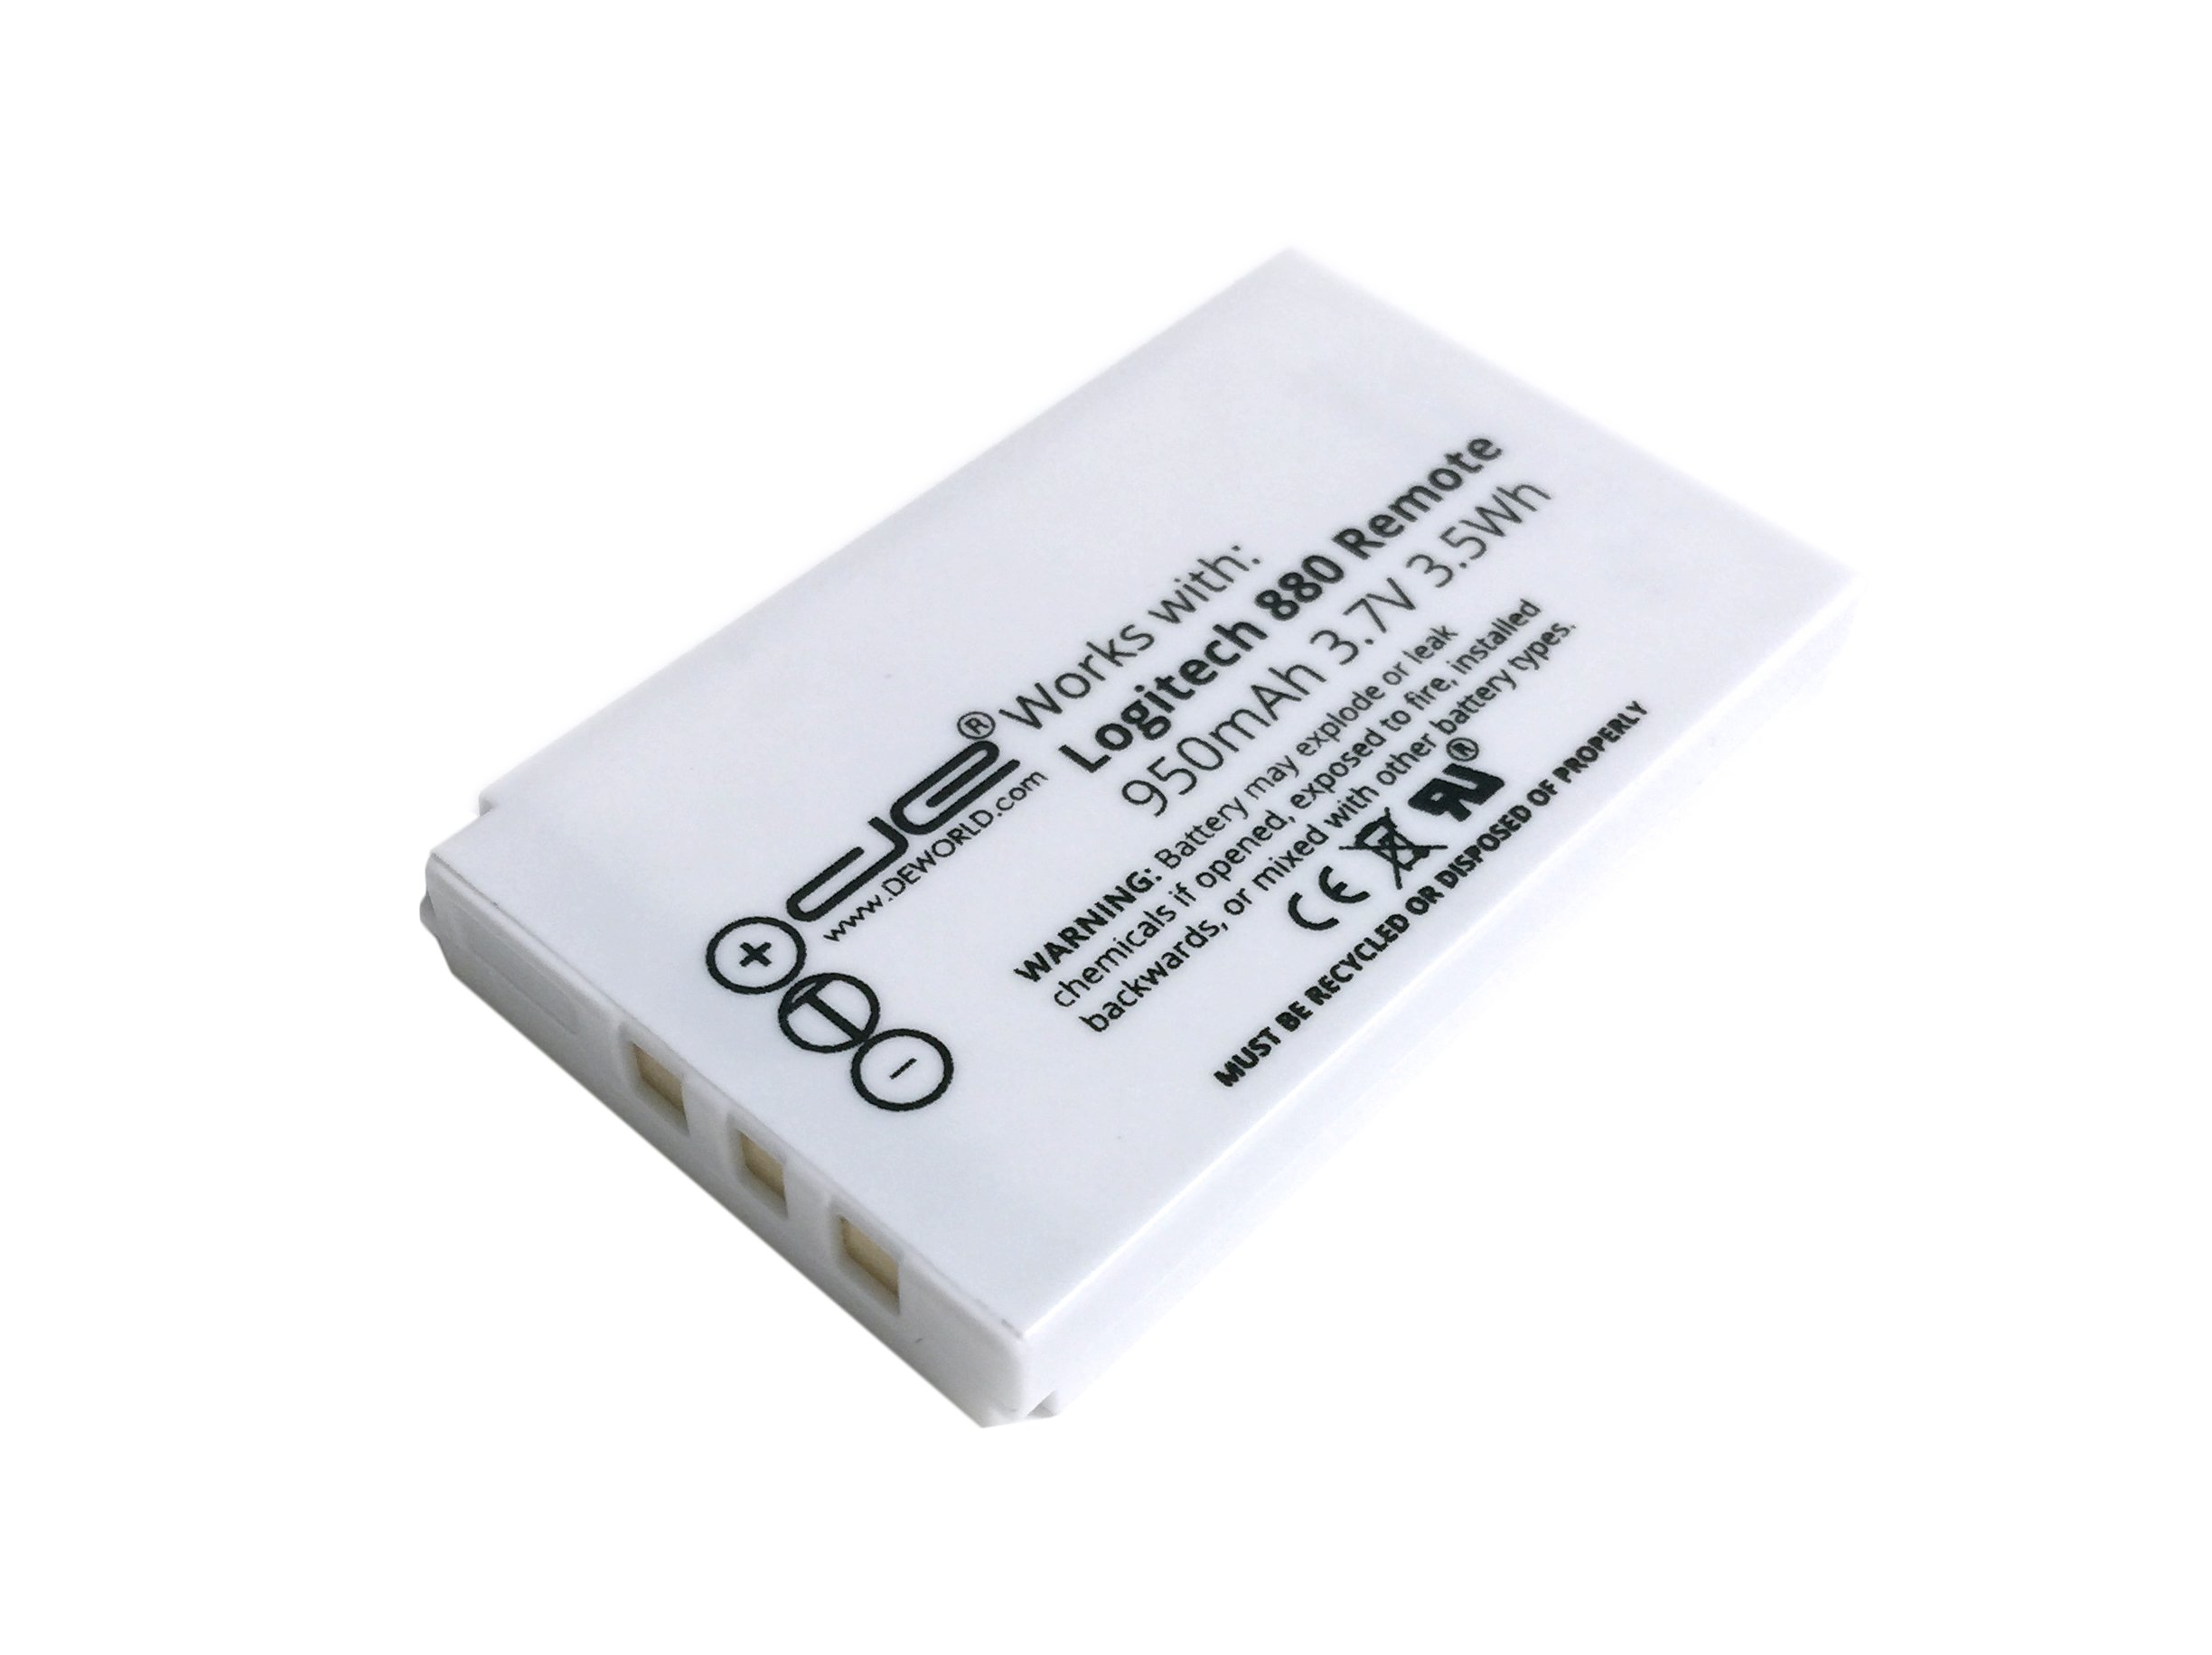 Logitech Harmony Remote Control Replacement Rechargeable Battery - Harmony One, Harmony One Advanced, Harmony 720, 850, 880, H880, 880 Pro, 885, 890, 890 Pro, 900, 900 Pro, Harmony 1, Harmony 1 Advanced Battery, Replaces 190304-0000 190304-2000 R-IG7 NTA2